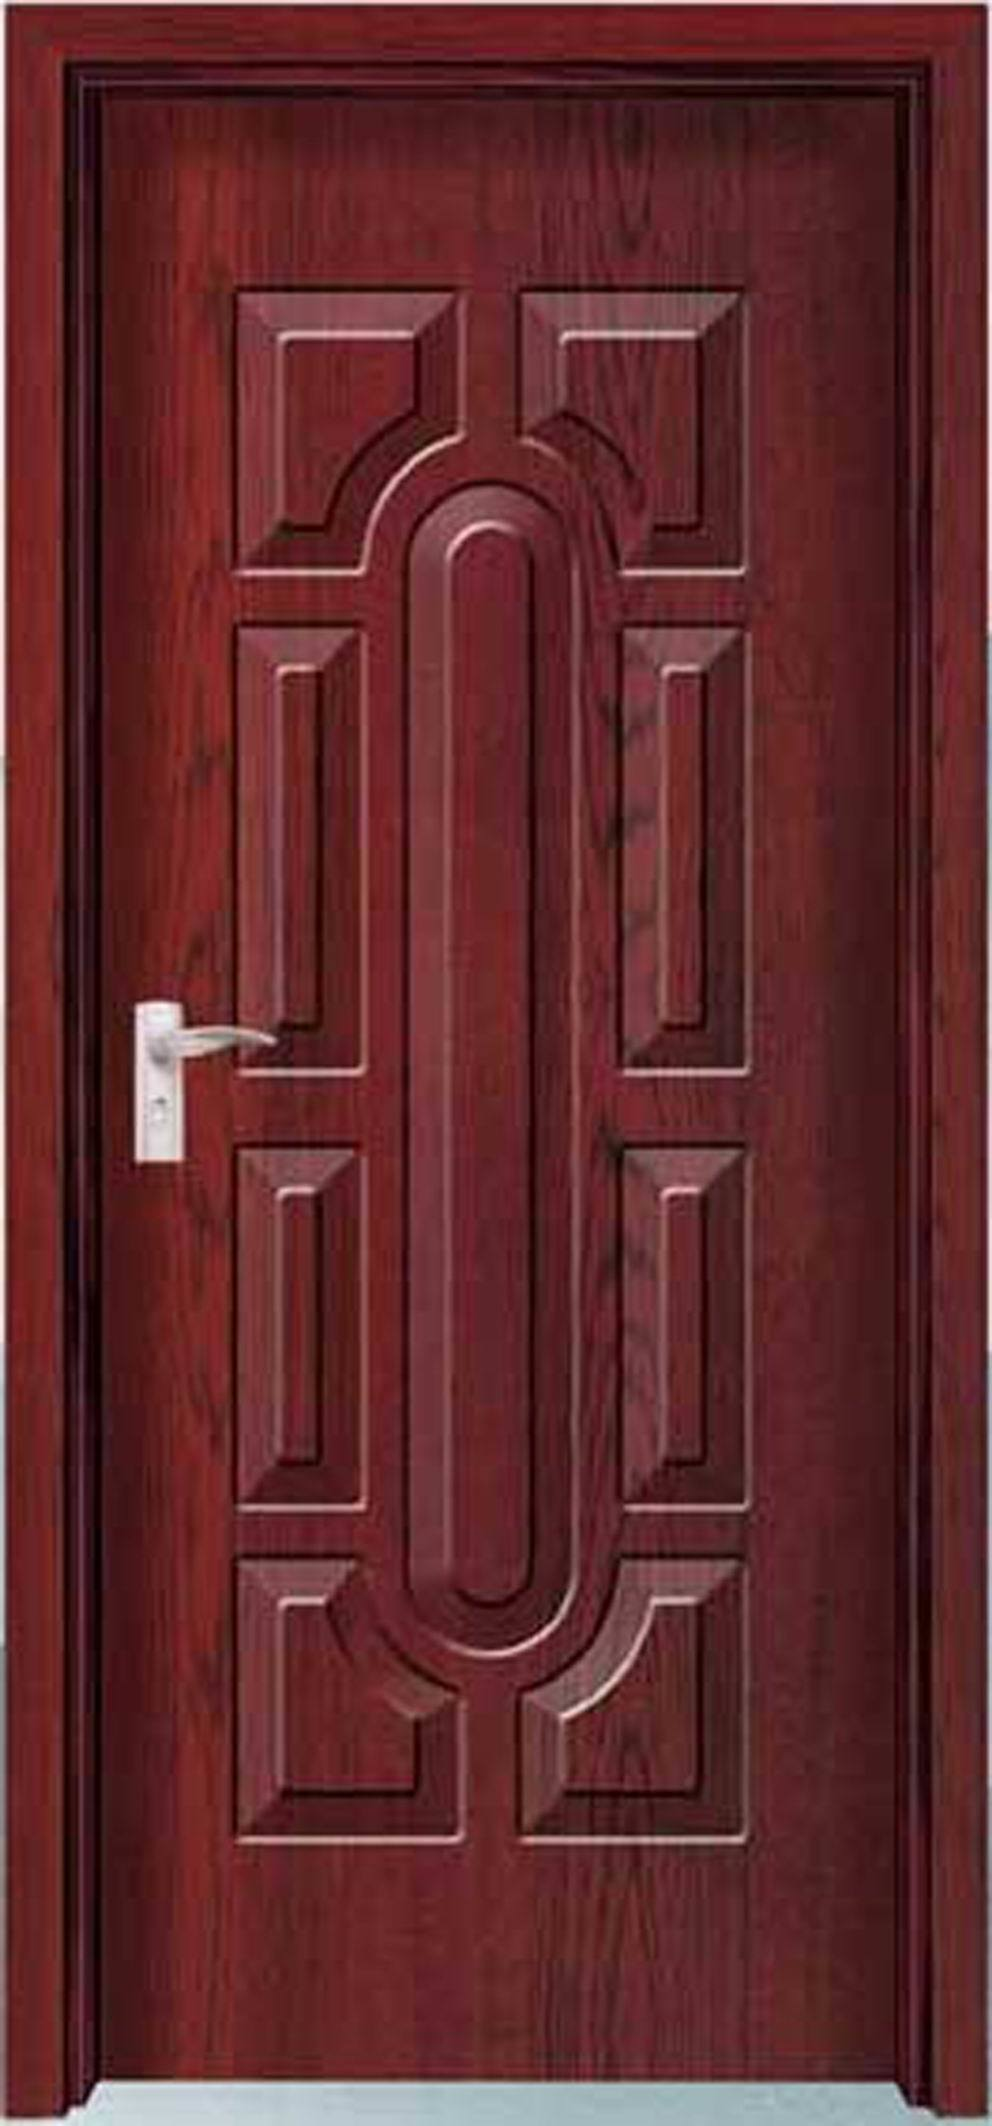 alibaba pvc sale door bathroom mdf on interior product buy price doors com hot